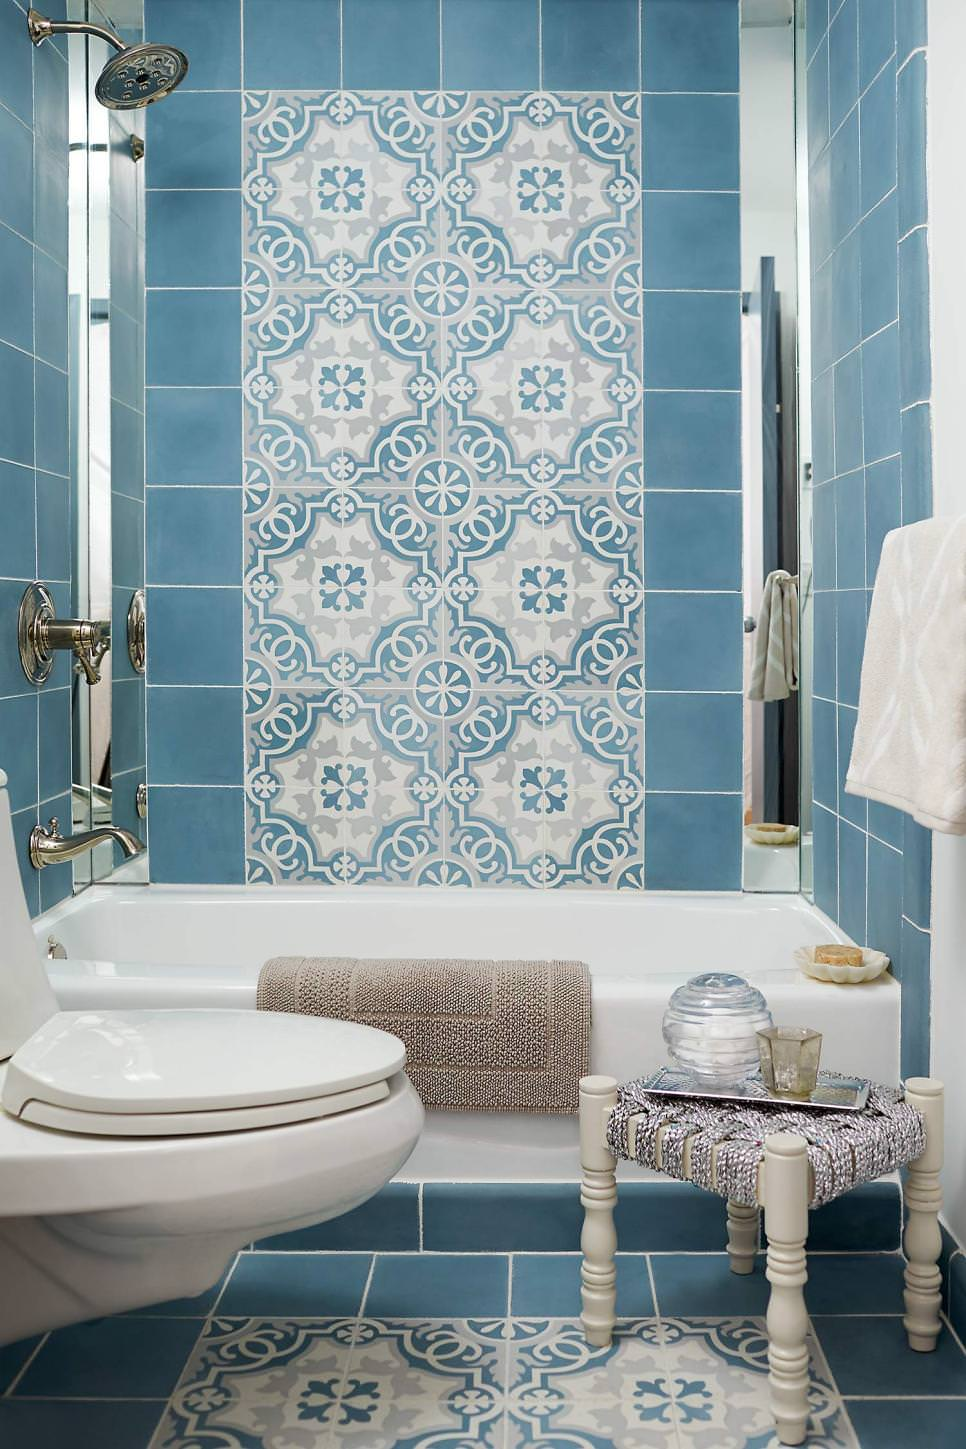 Tiffany blue bathroom designs - Floral Blue Bathroom Design